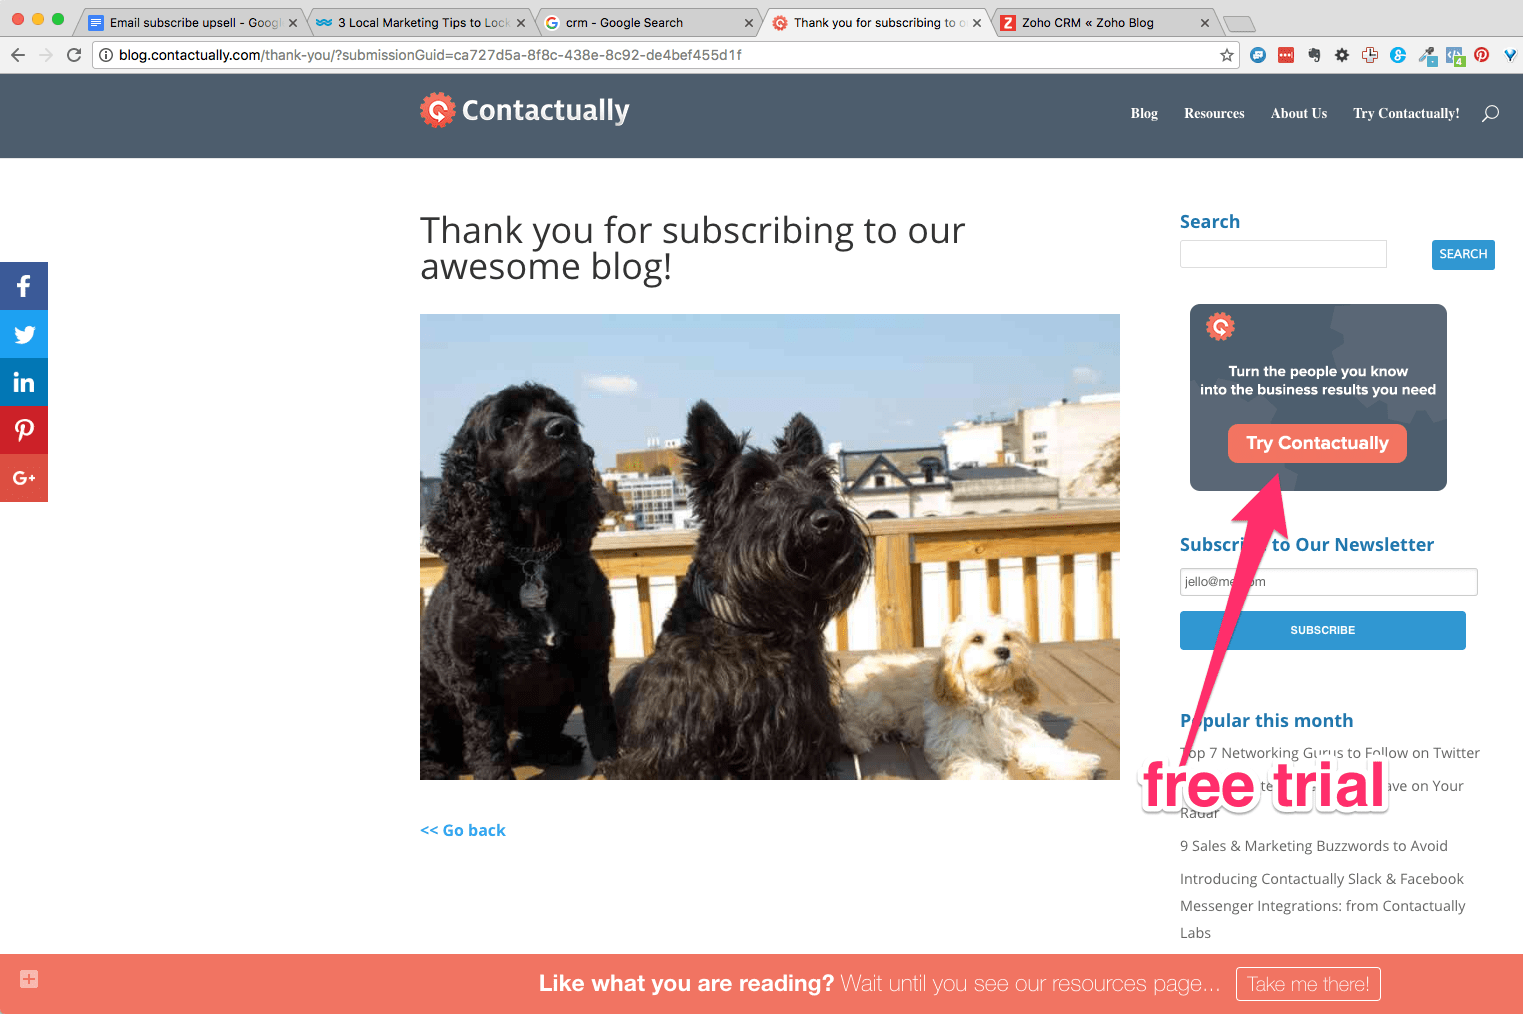 Thank you for subscribing to our awesome blog 1 1